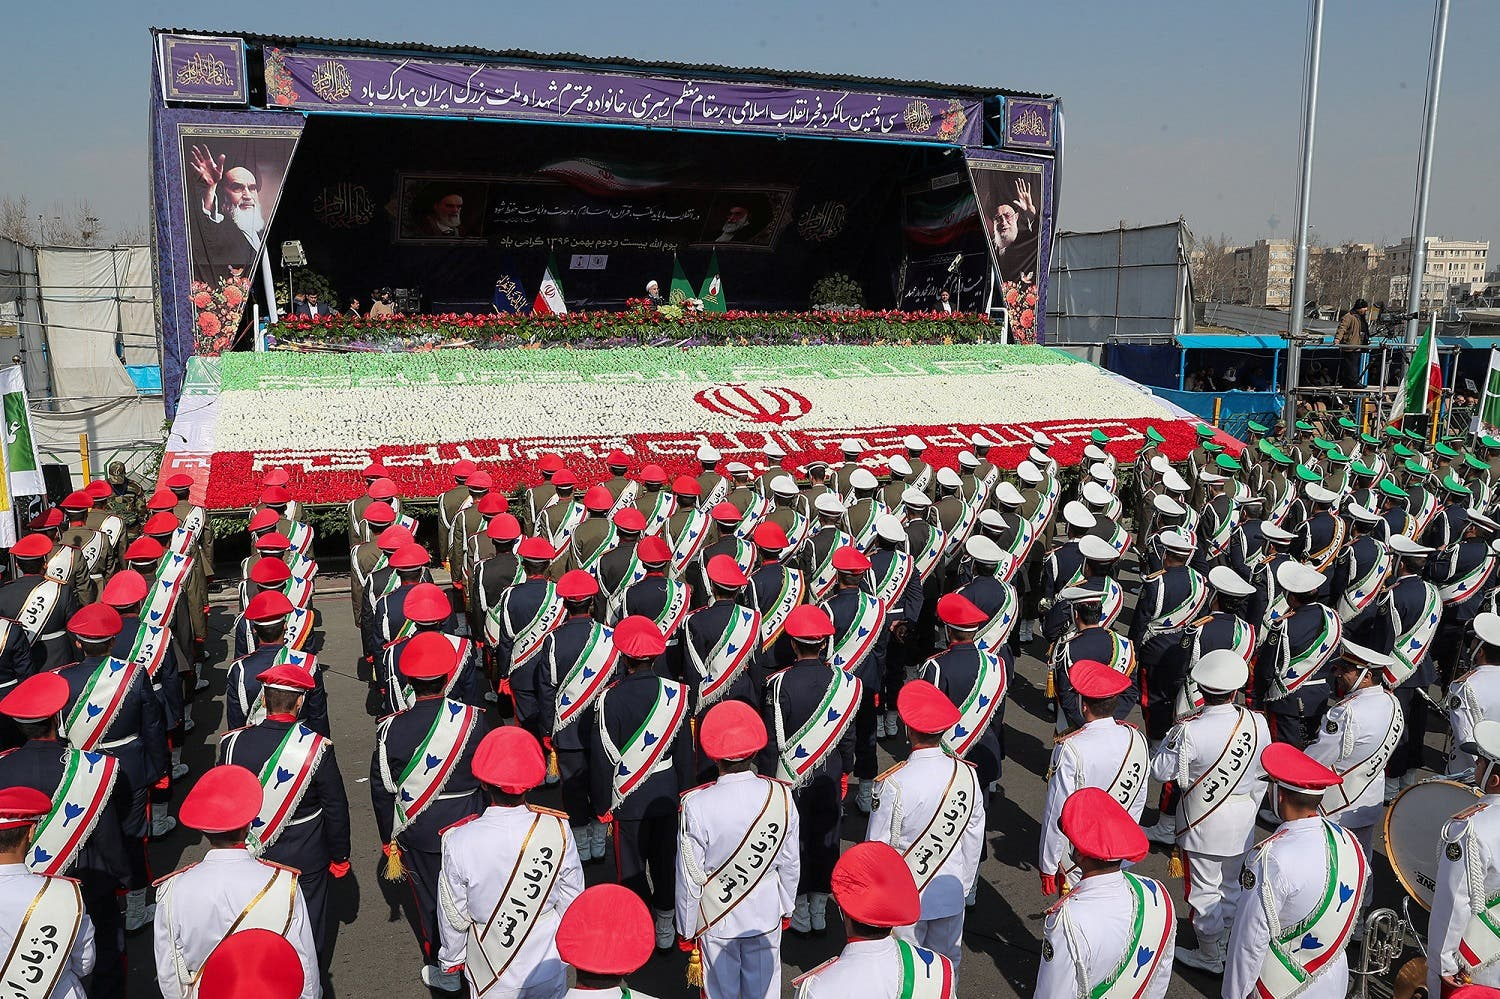 Iranian President Hassan Rouhani gestures as members of Iranian armed forces take part in a rally in Tehran, on February 11, 2018. (Reuters)